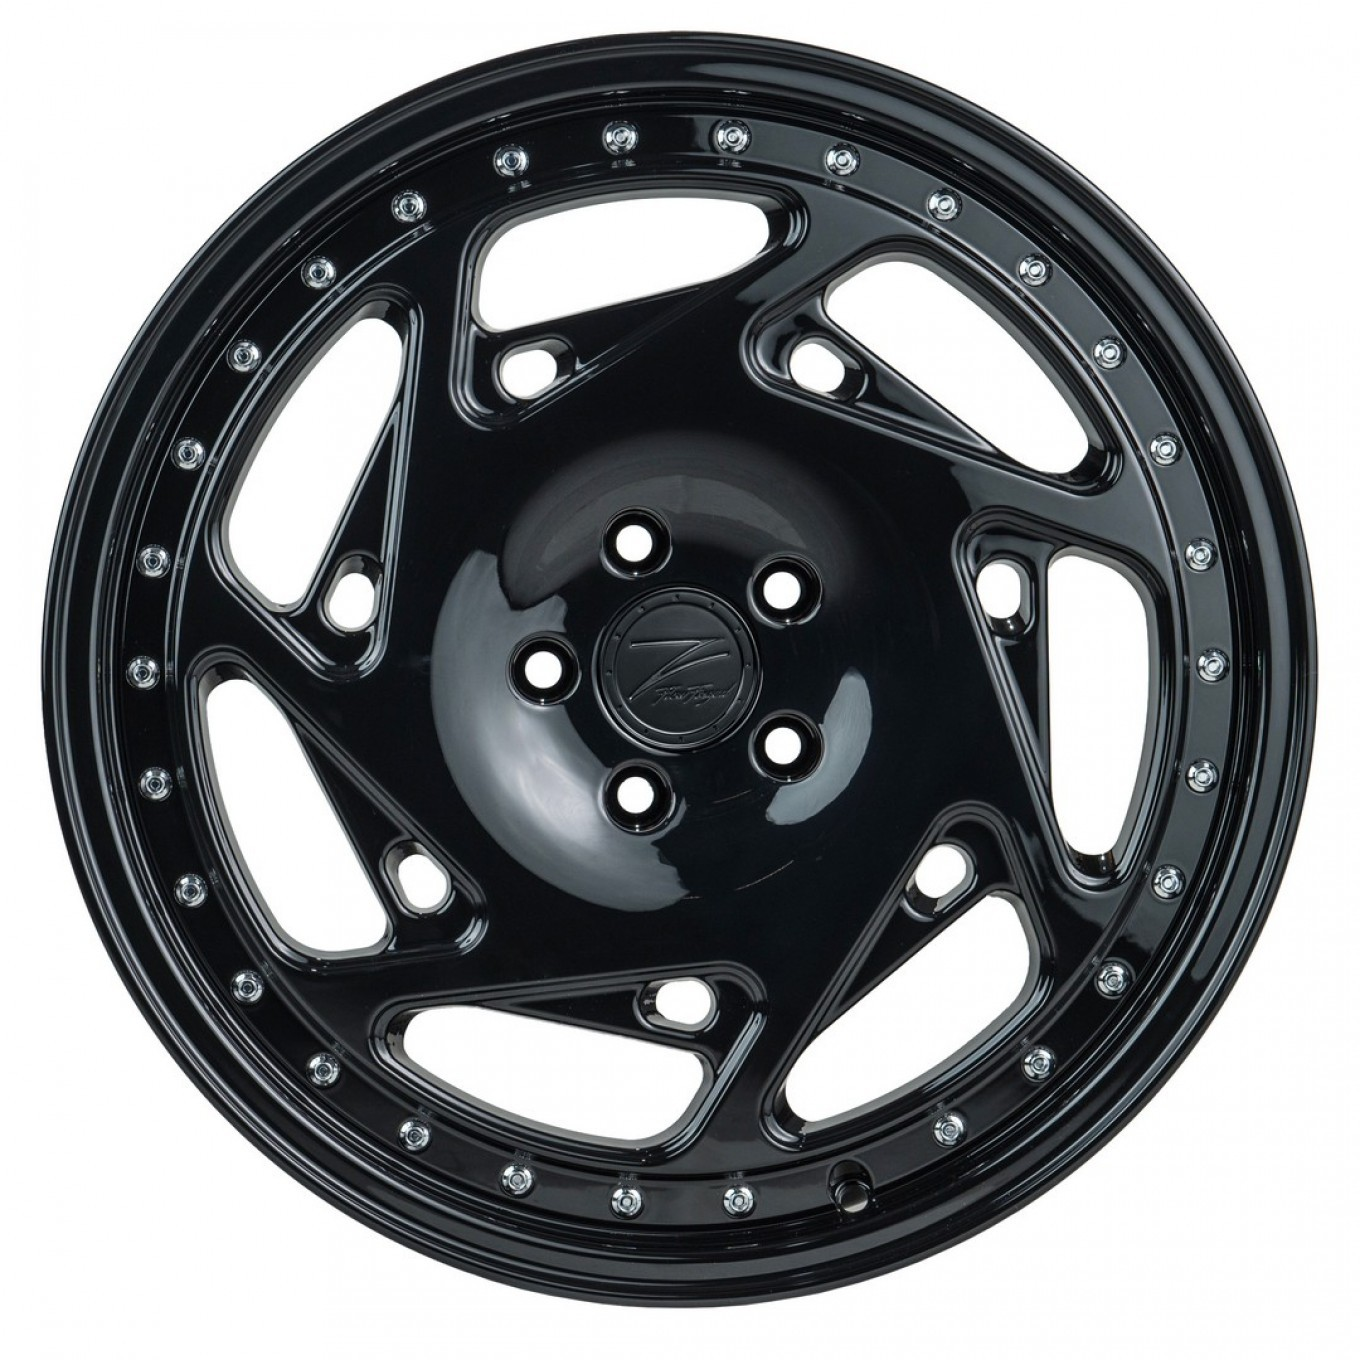 Z-Performance ZP5.1 Flow Forged wheels